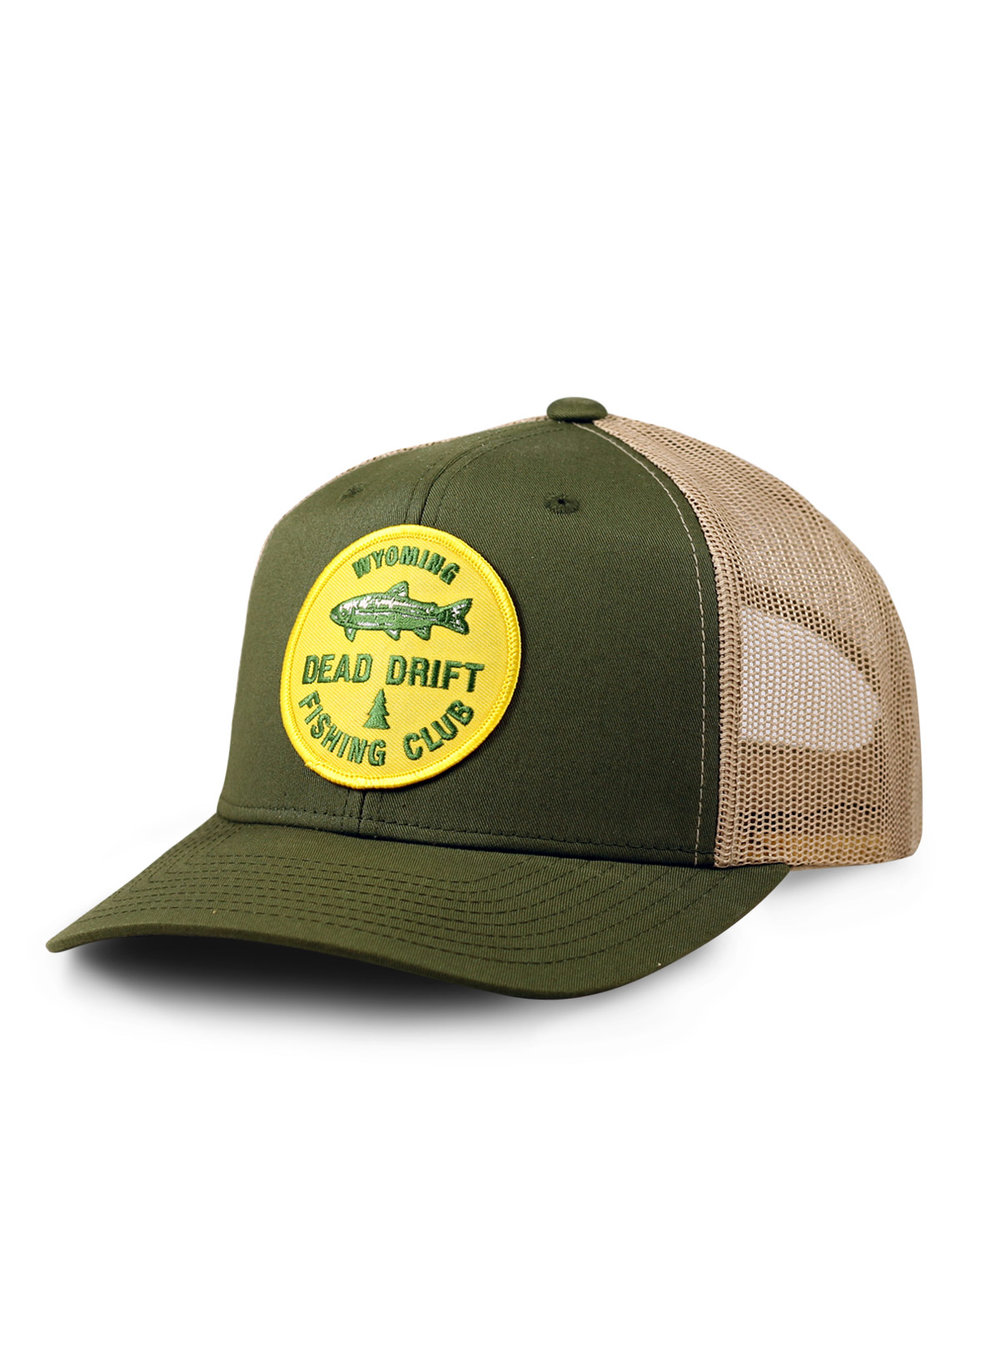 dead drift fly fishing club trucker dead drift